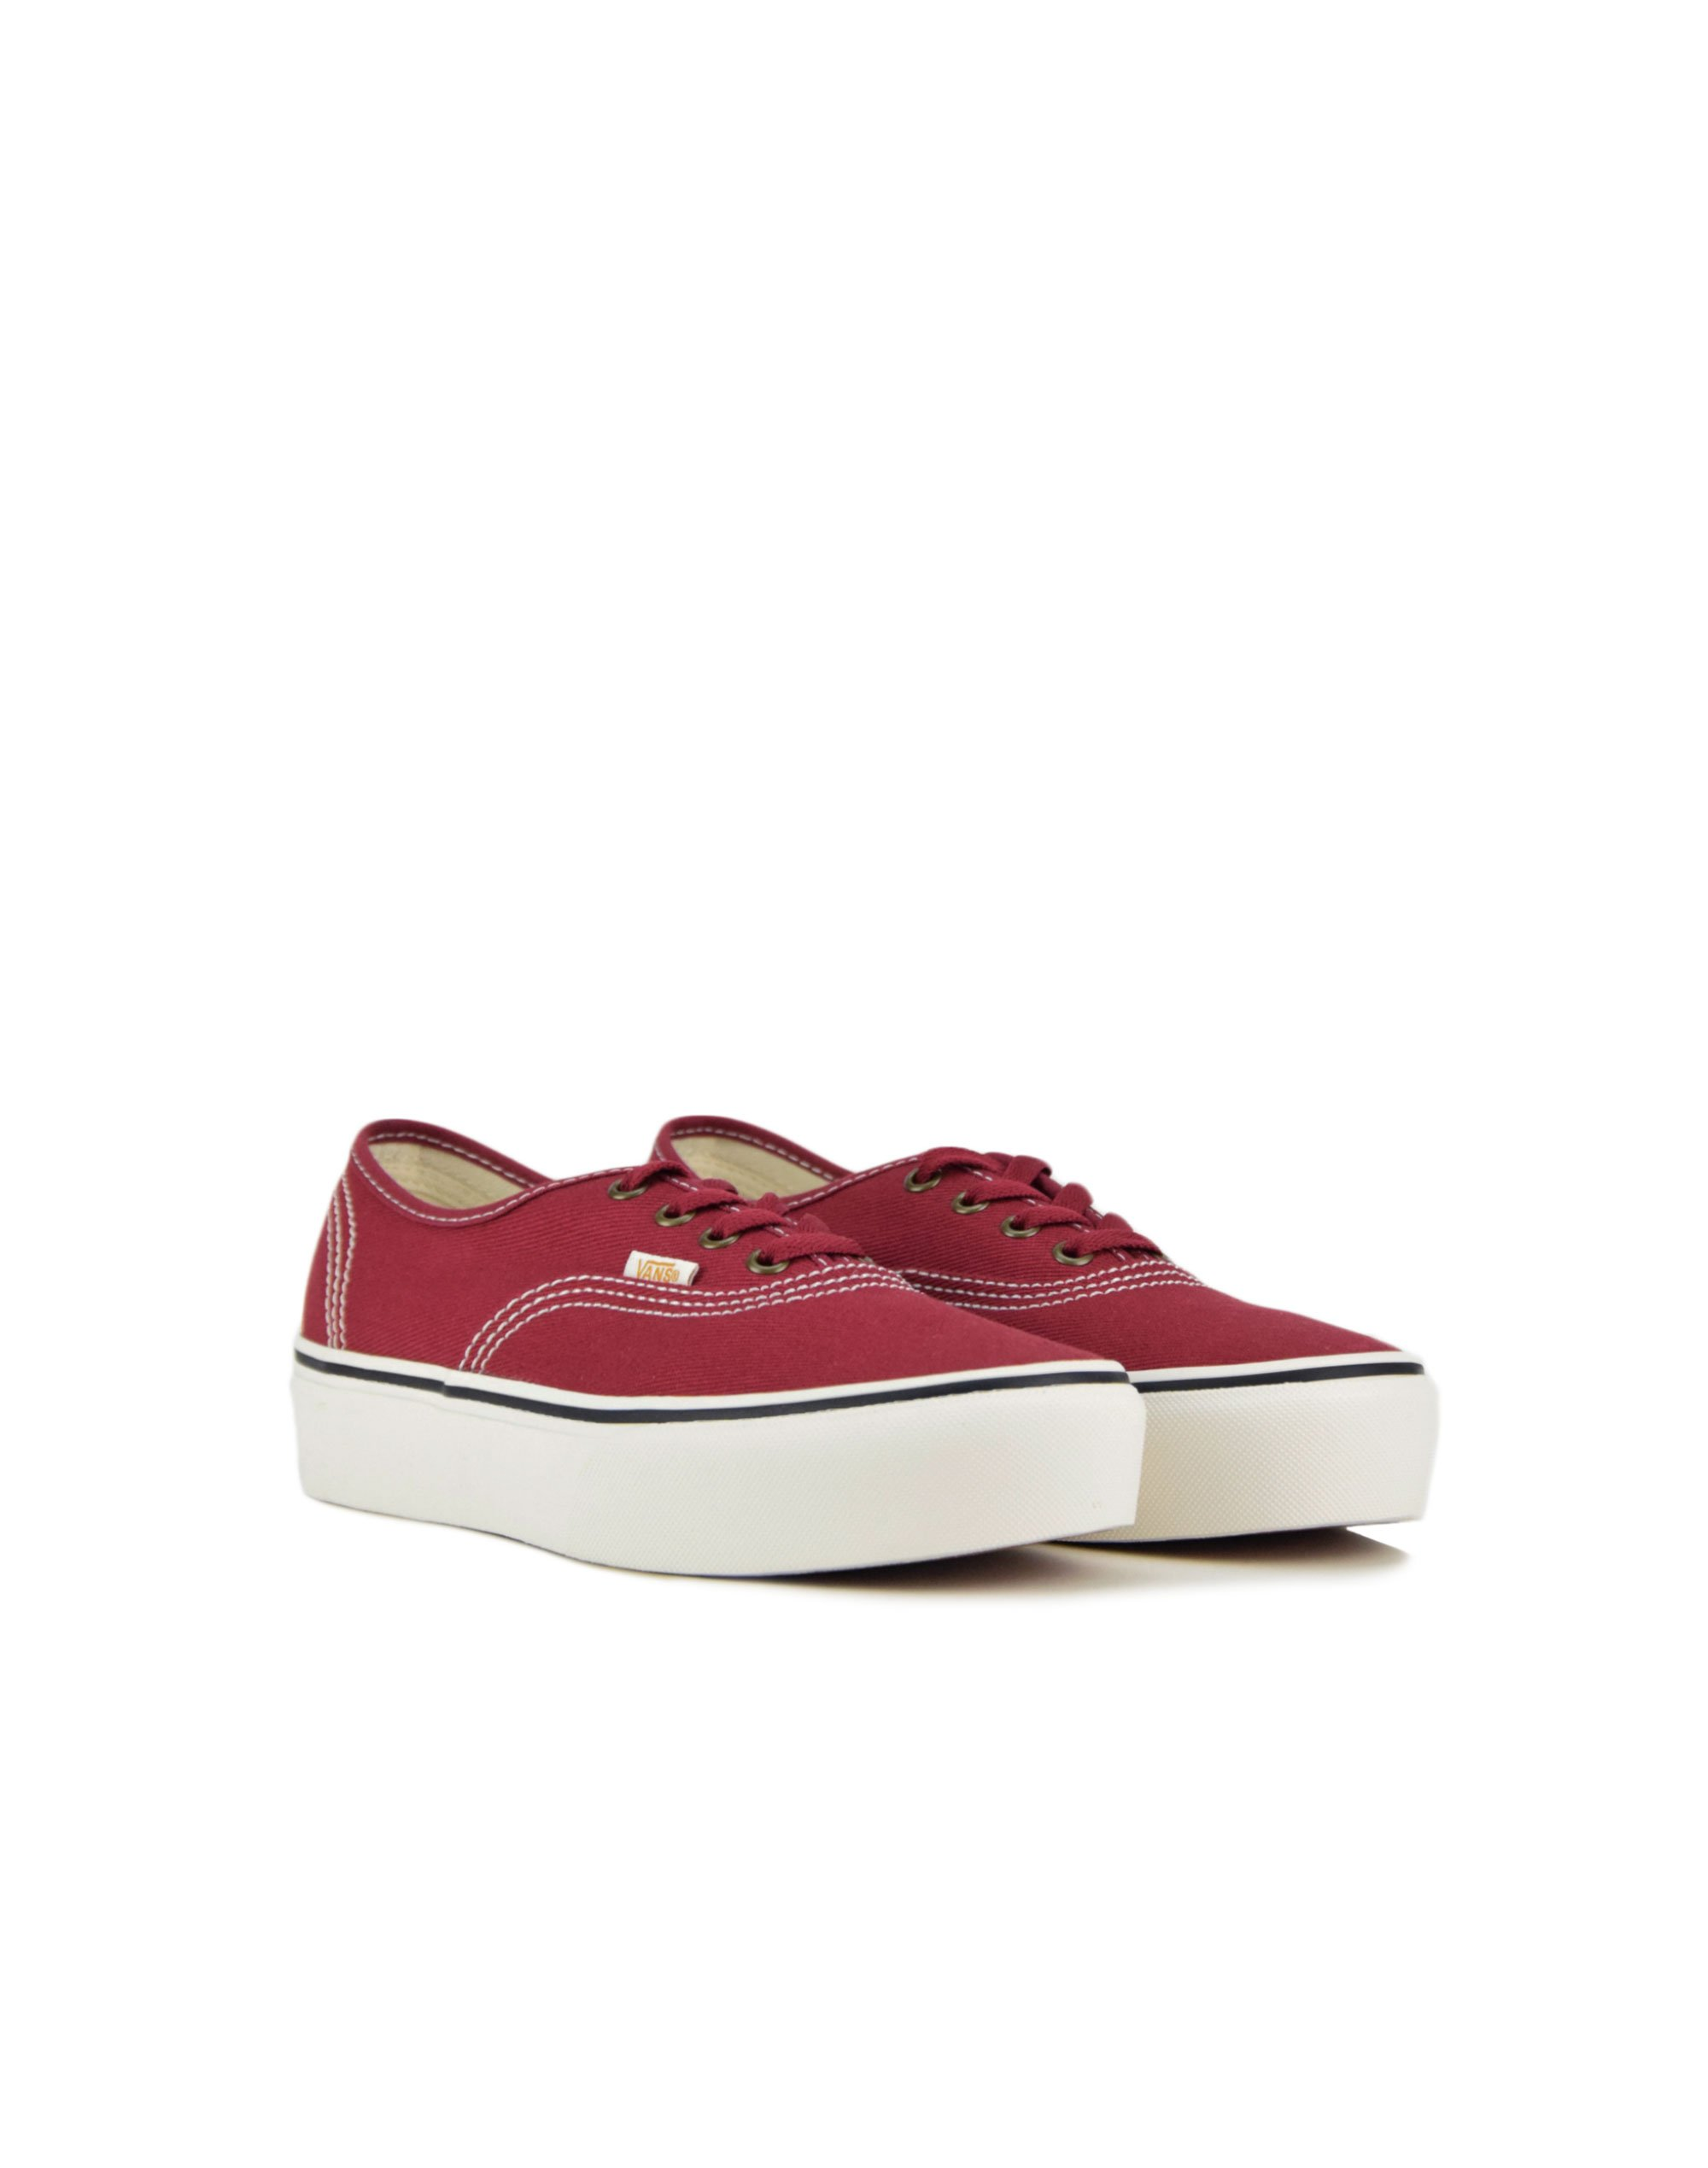 Vans Authentic Platform (VN0A3AV8WQ91) Biking Red/Blanc De Blanc